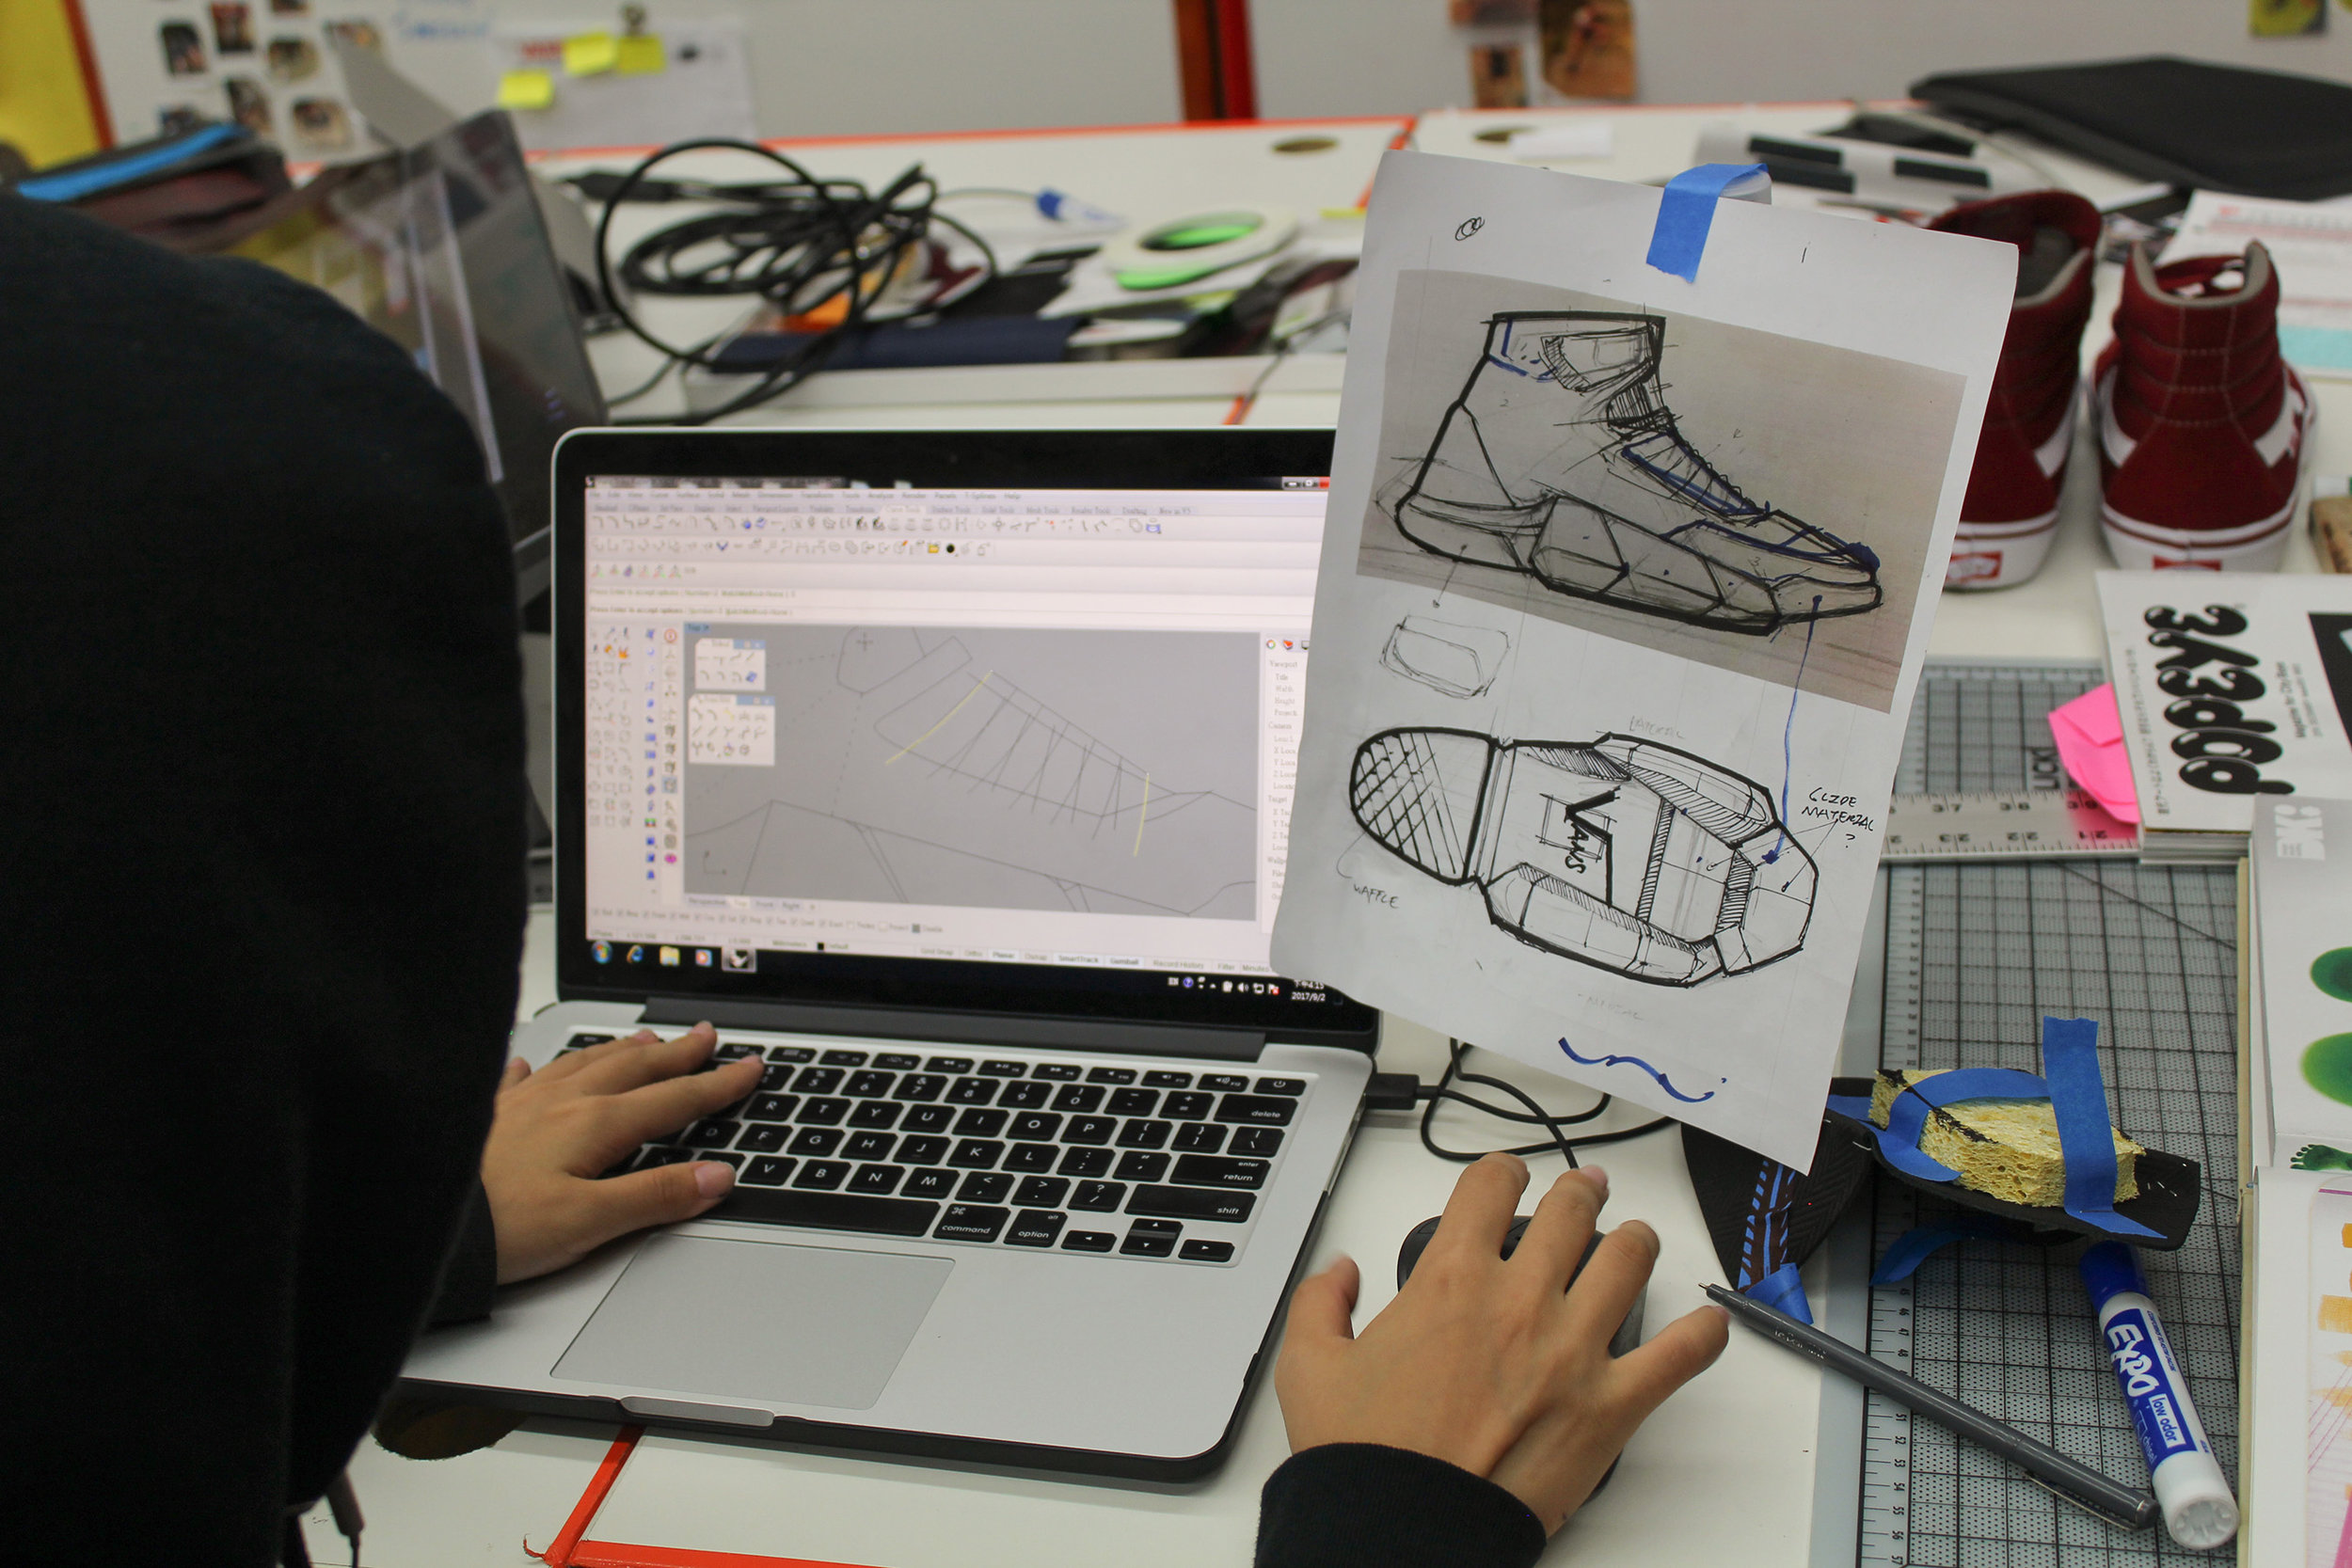 Pan starts her line drawing from the design sketches given by her footwear designer